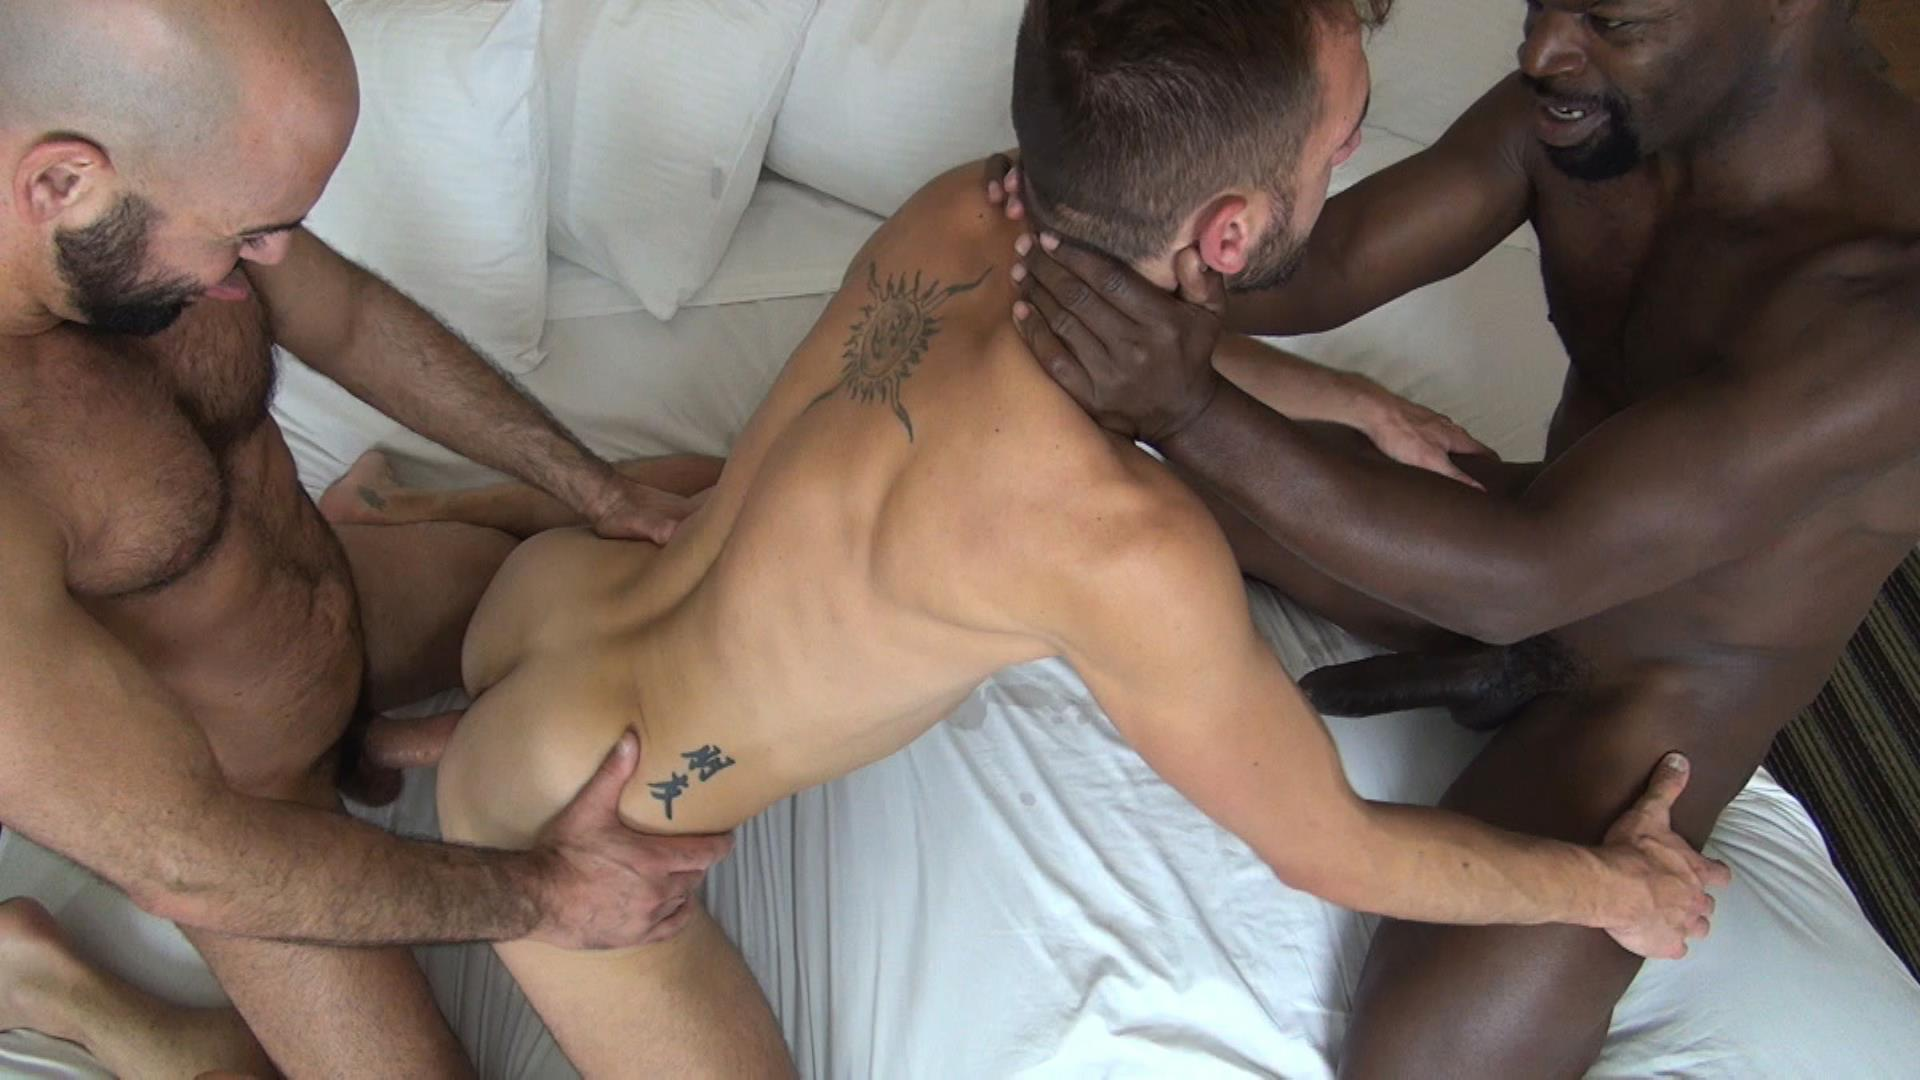 Raw Fuck Club Adam Russo and Cutler X and Dylan Strokes Interracial Bareback Big Black Cock Amateur Gay Porn 6 Interracial Boyfriends Adam Russo and Cutler X Barebacking Dylan Strokes